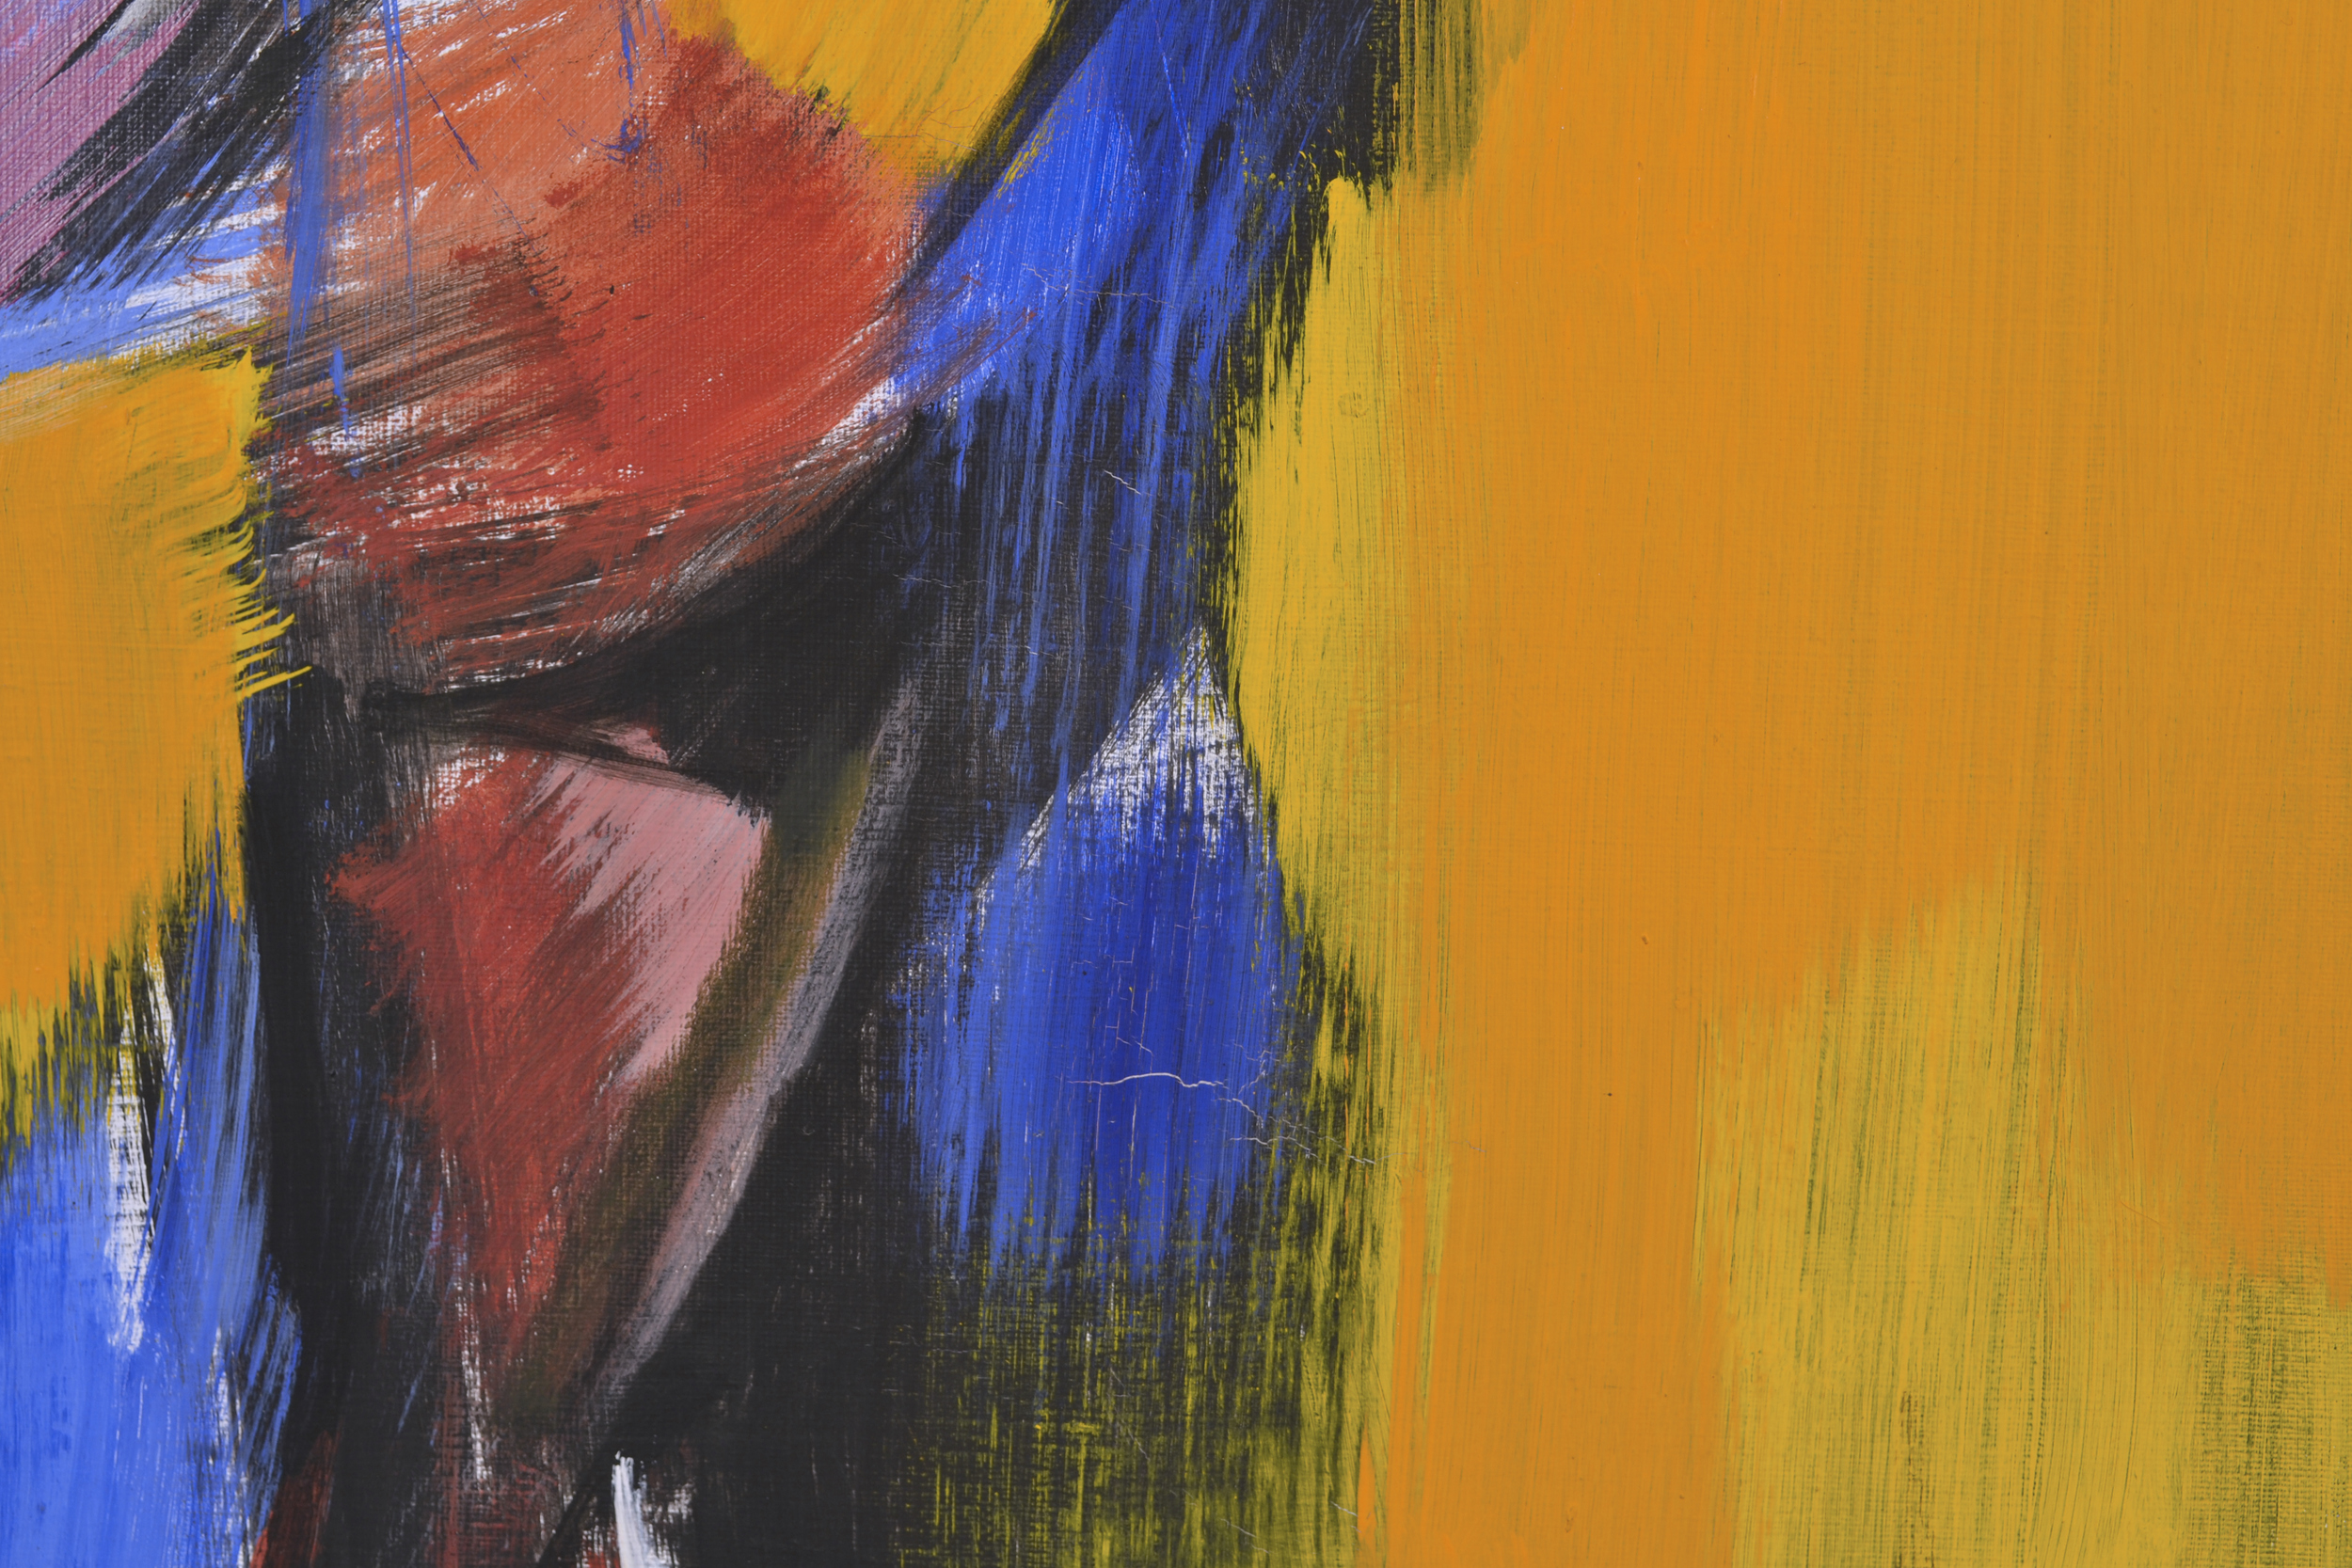 Detail of micro-cracks within the painting.